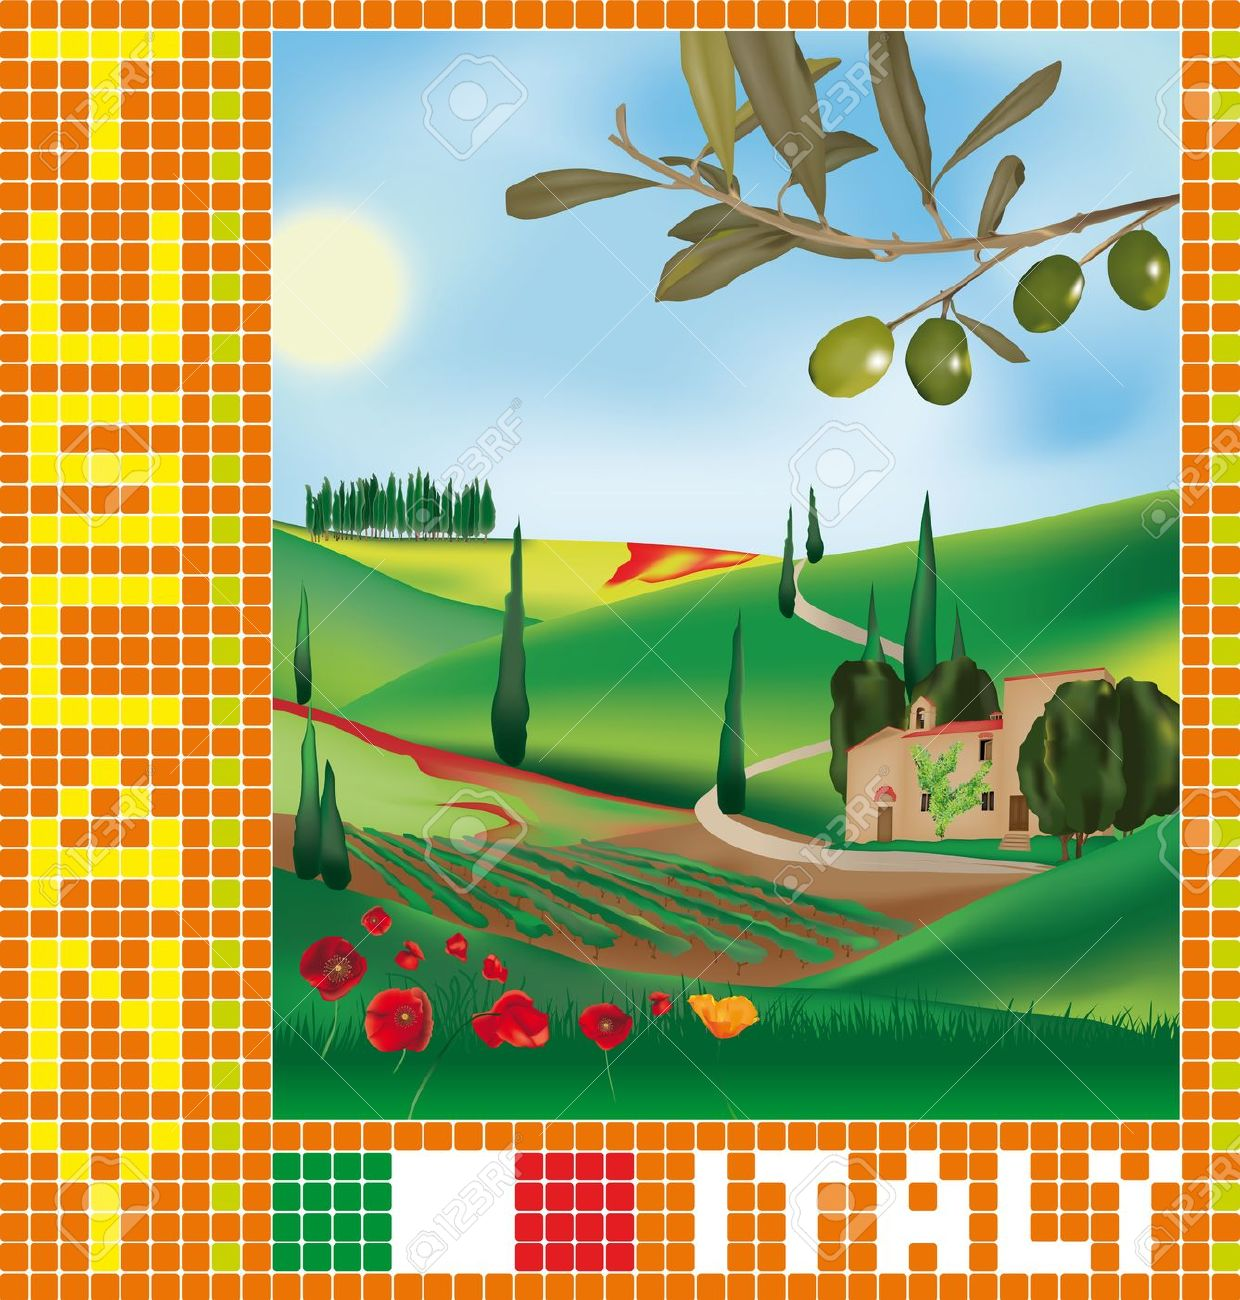 716 Tuscany Landscape Stock Vector Illustration And Royalty Free.